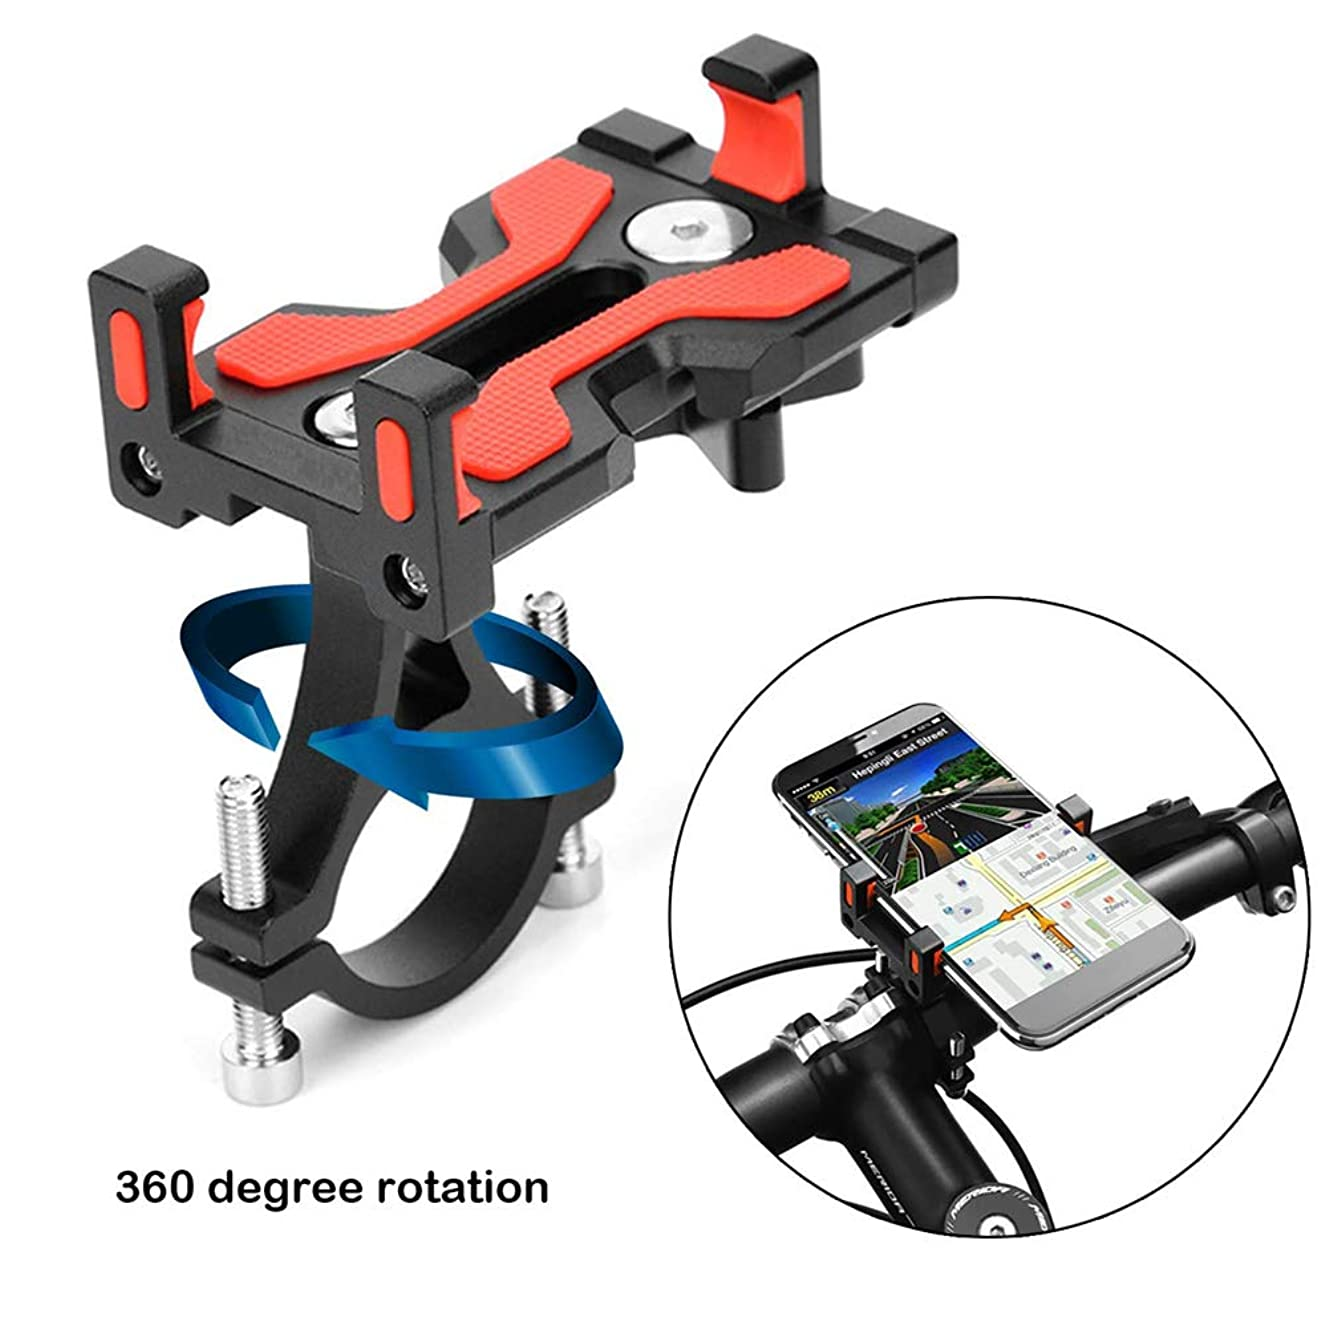 Price Xes Bike Phone Mount Holder, Metal MTB Bike Bicycle Phone Handlebar Stem Mount/Bike Accessories, Anti Shake & Stable Cradle Clamp Smartphone Support for Devices 4 to 6.4 inches